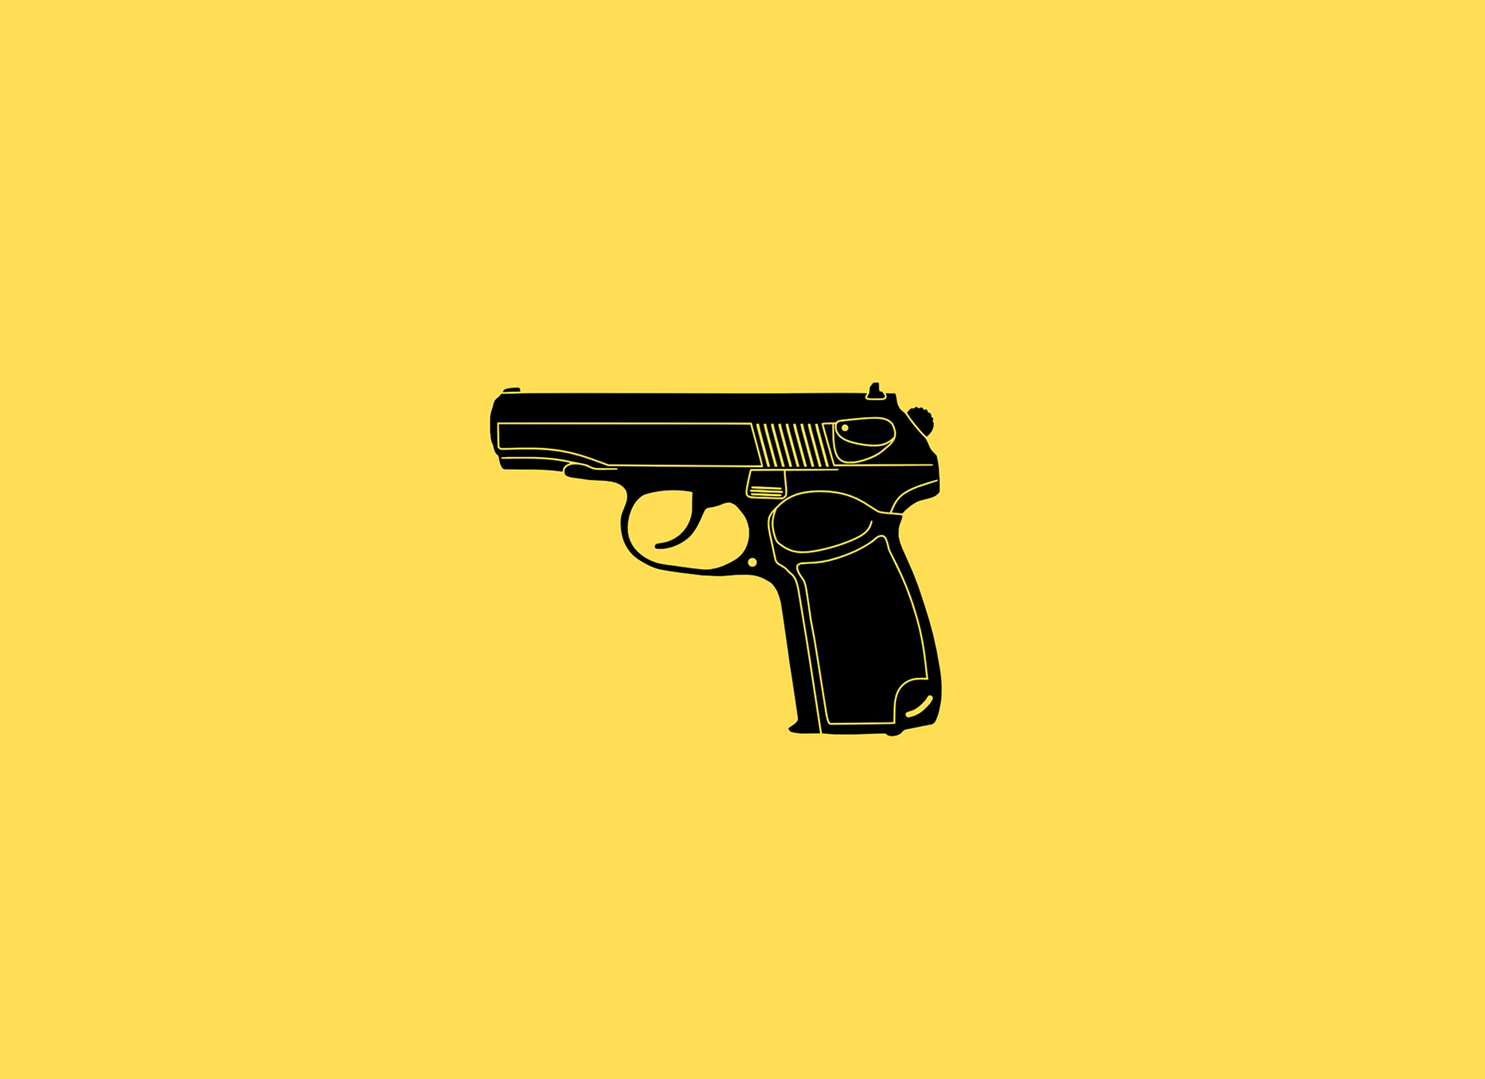 Picture of a black pistol against a yellow background.